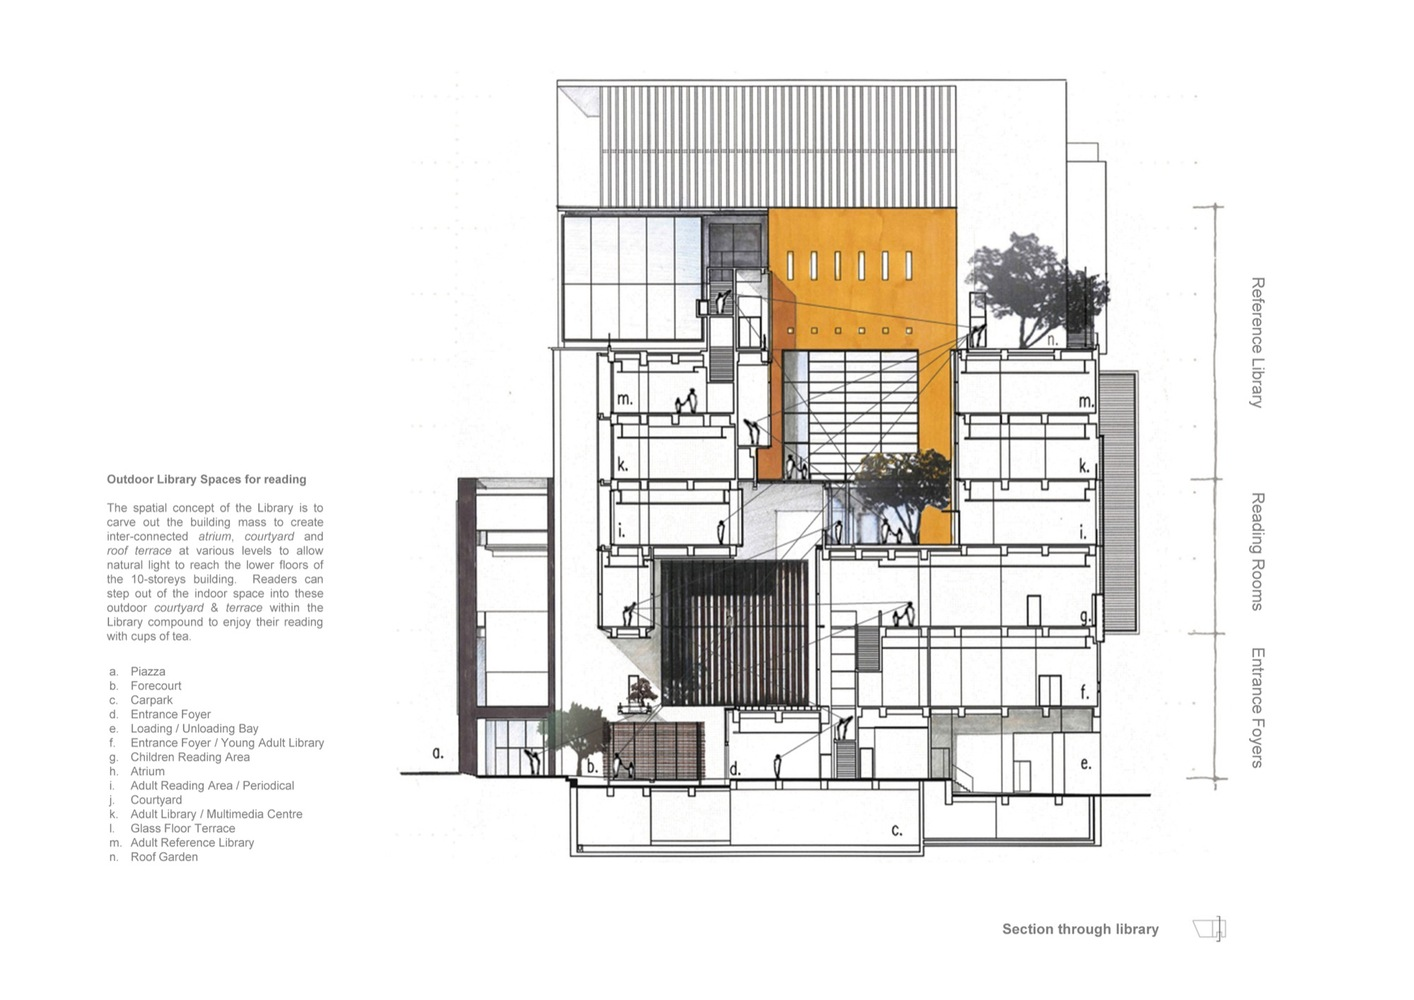 gallery of ping shan tin shui wai leisure and cultural building ping shan tin shui wai leisure and cultural building section diagram